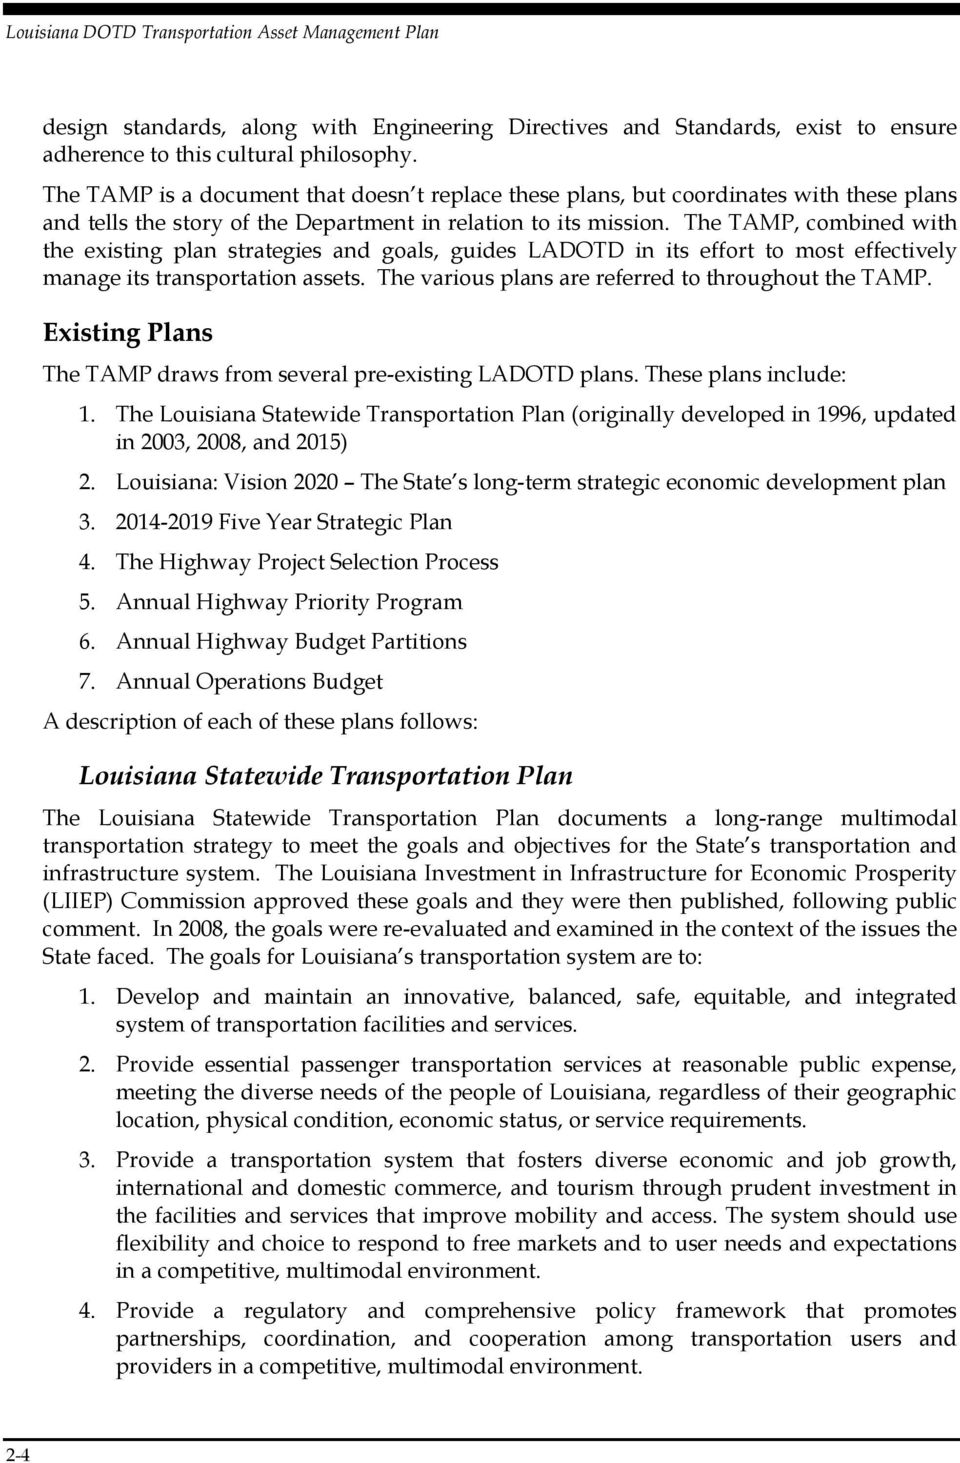 The TAMP, combined with the existing plan strategies and goals, guides LADOTD in its effort to most effectively manage its transportation assets. The various plans are referred to throughout the TAMP.